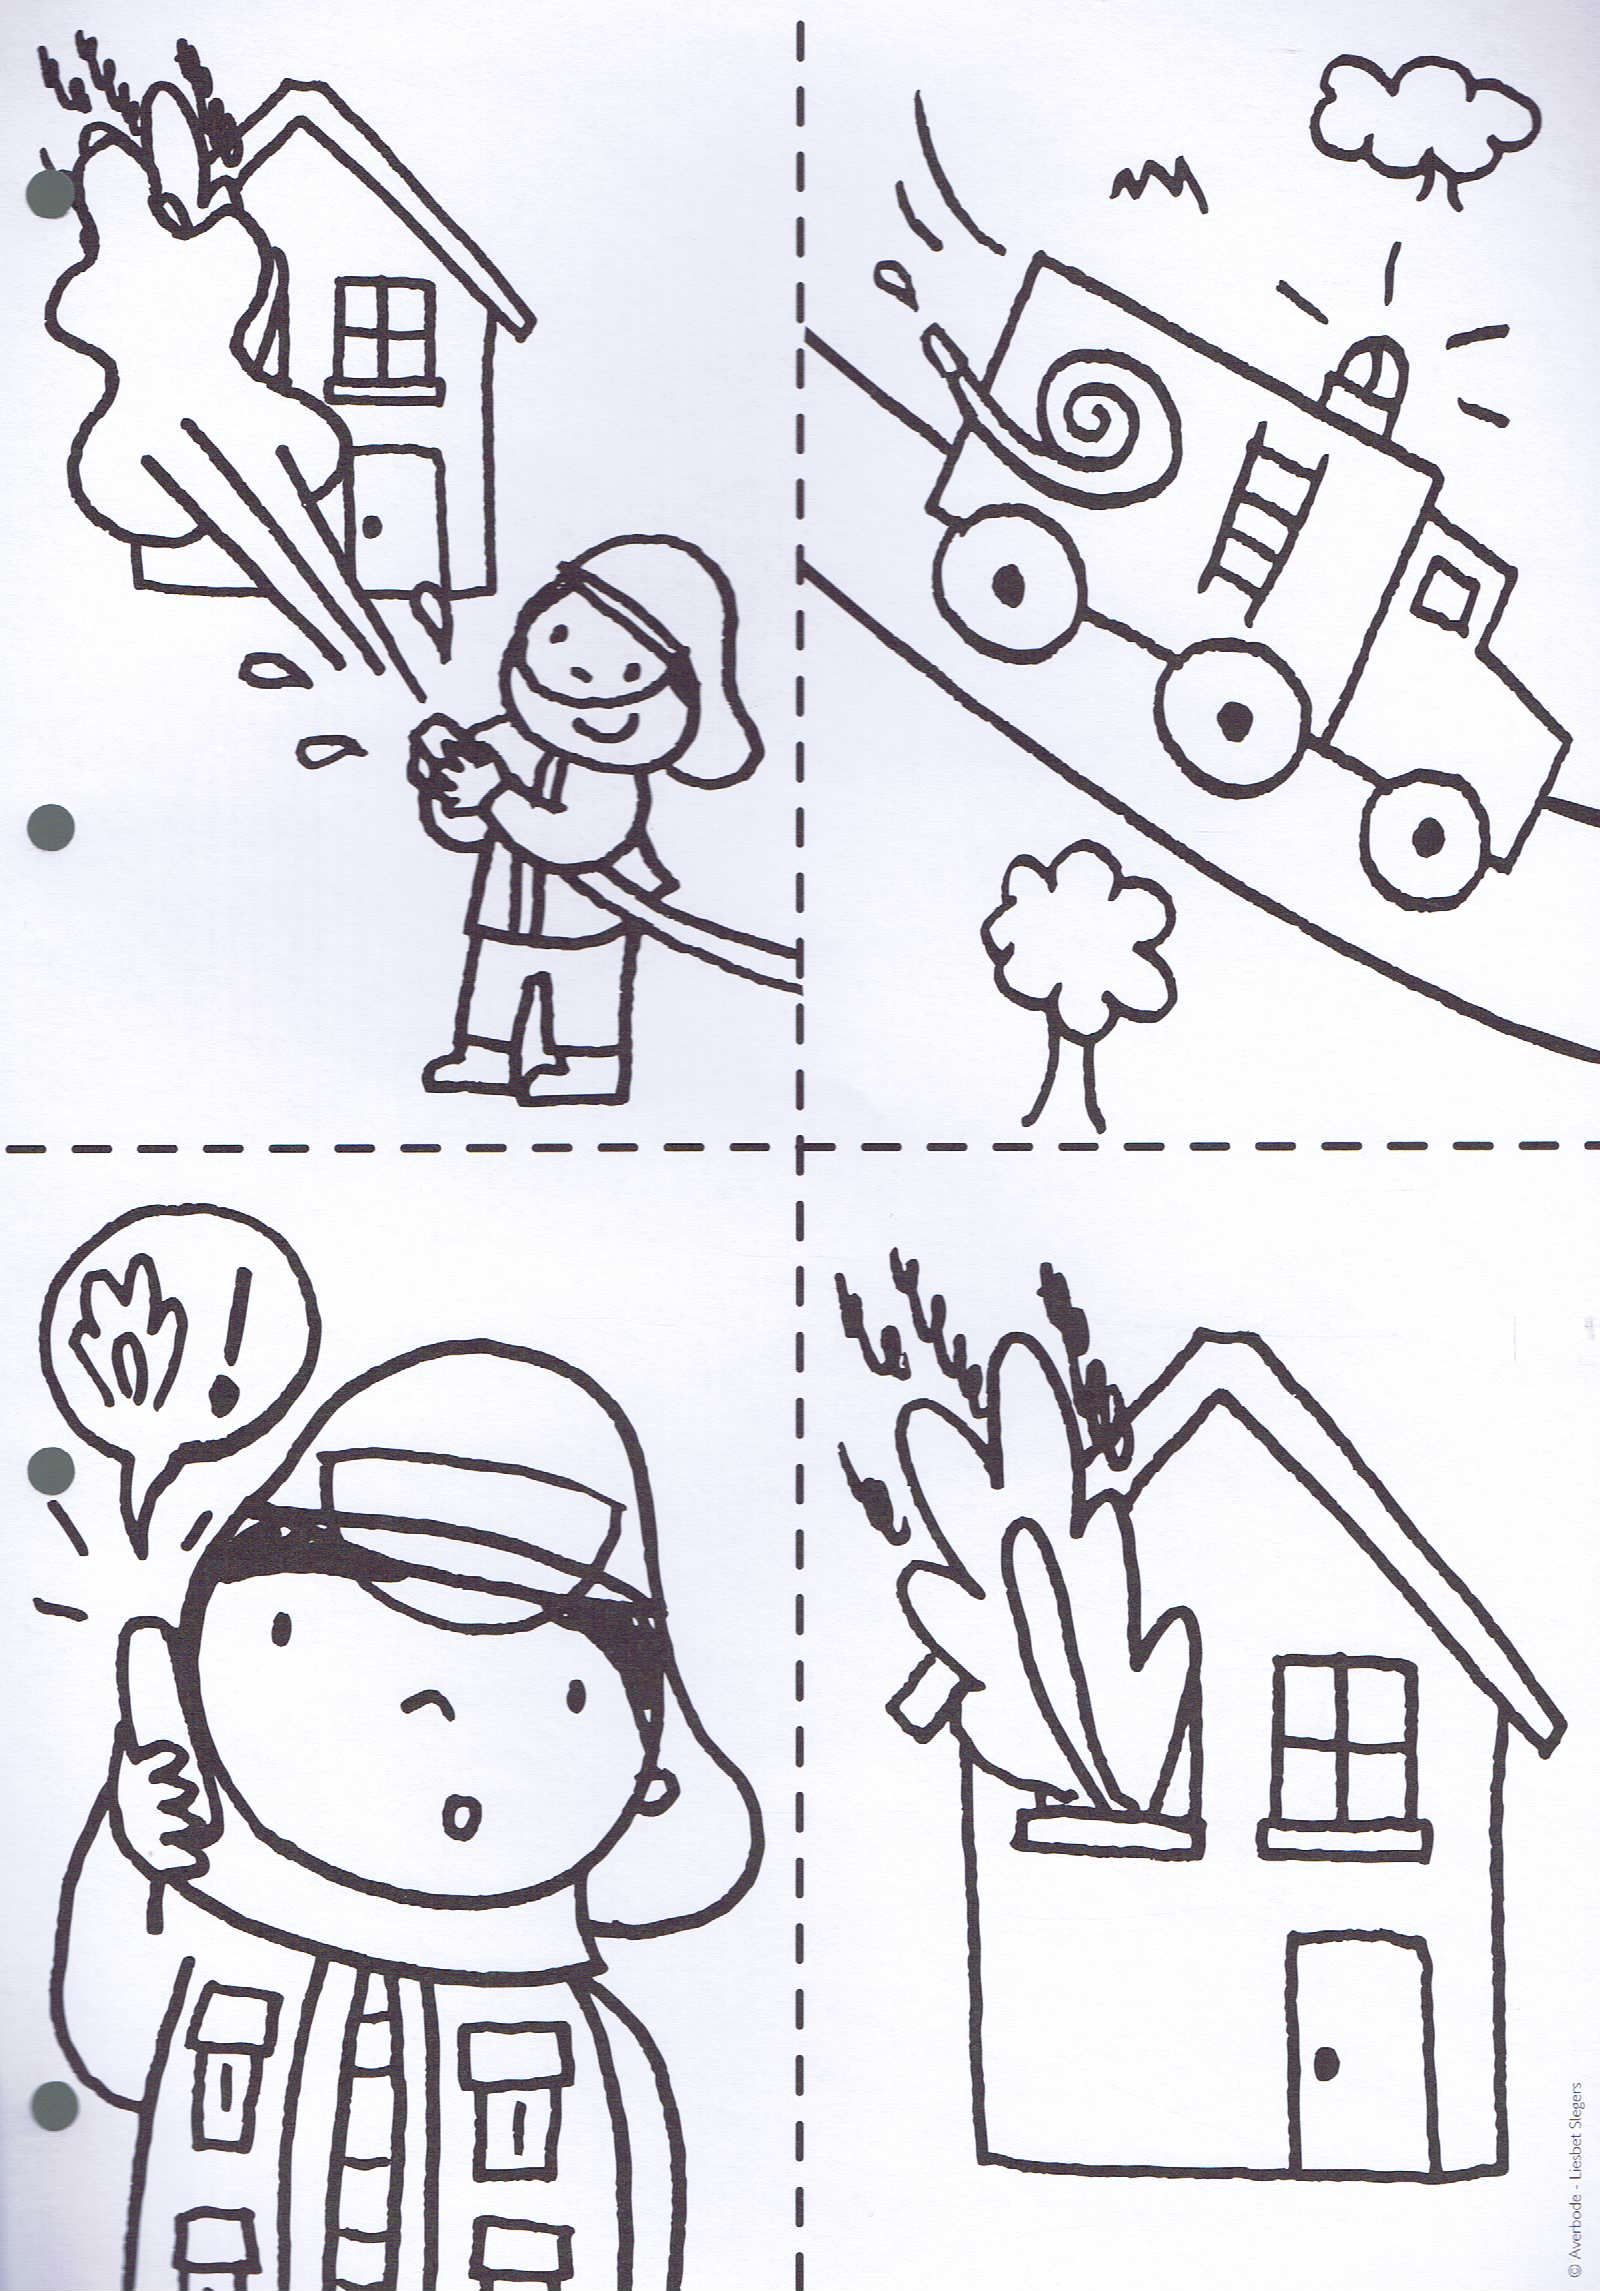 Firefighter Worksheet For Kindergarten